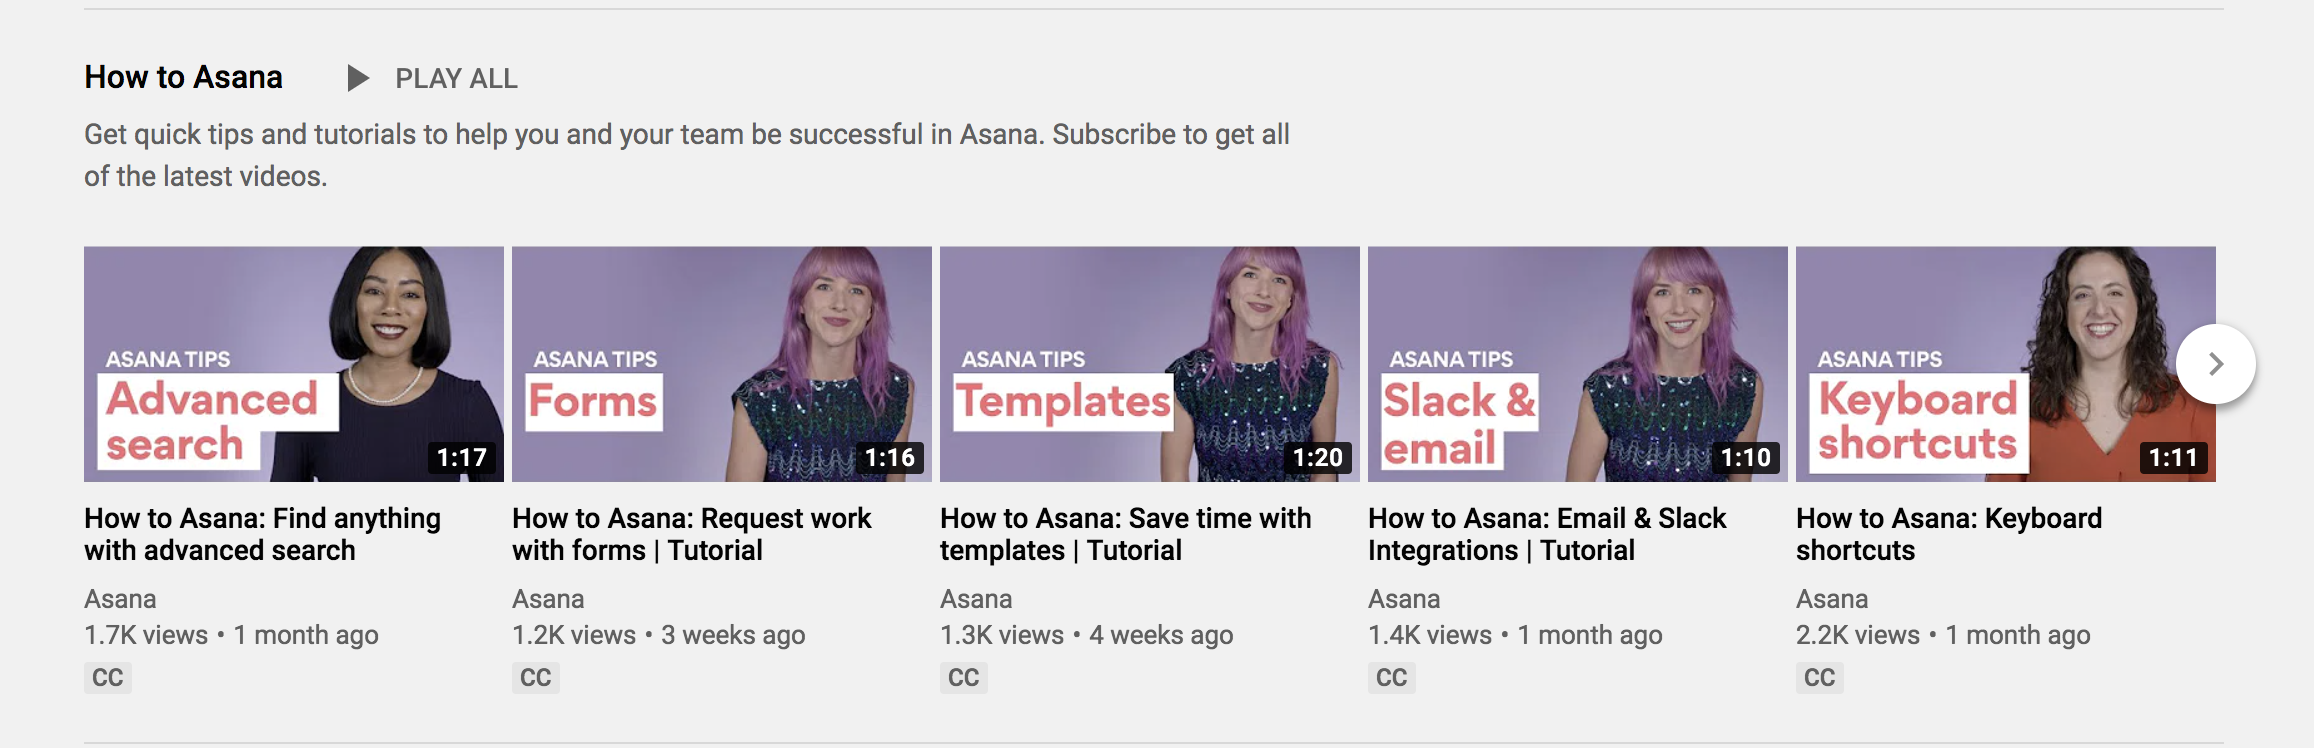 asana video marketing